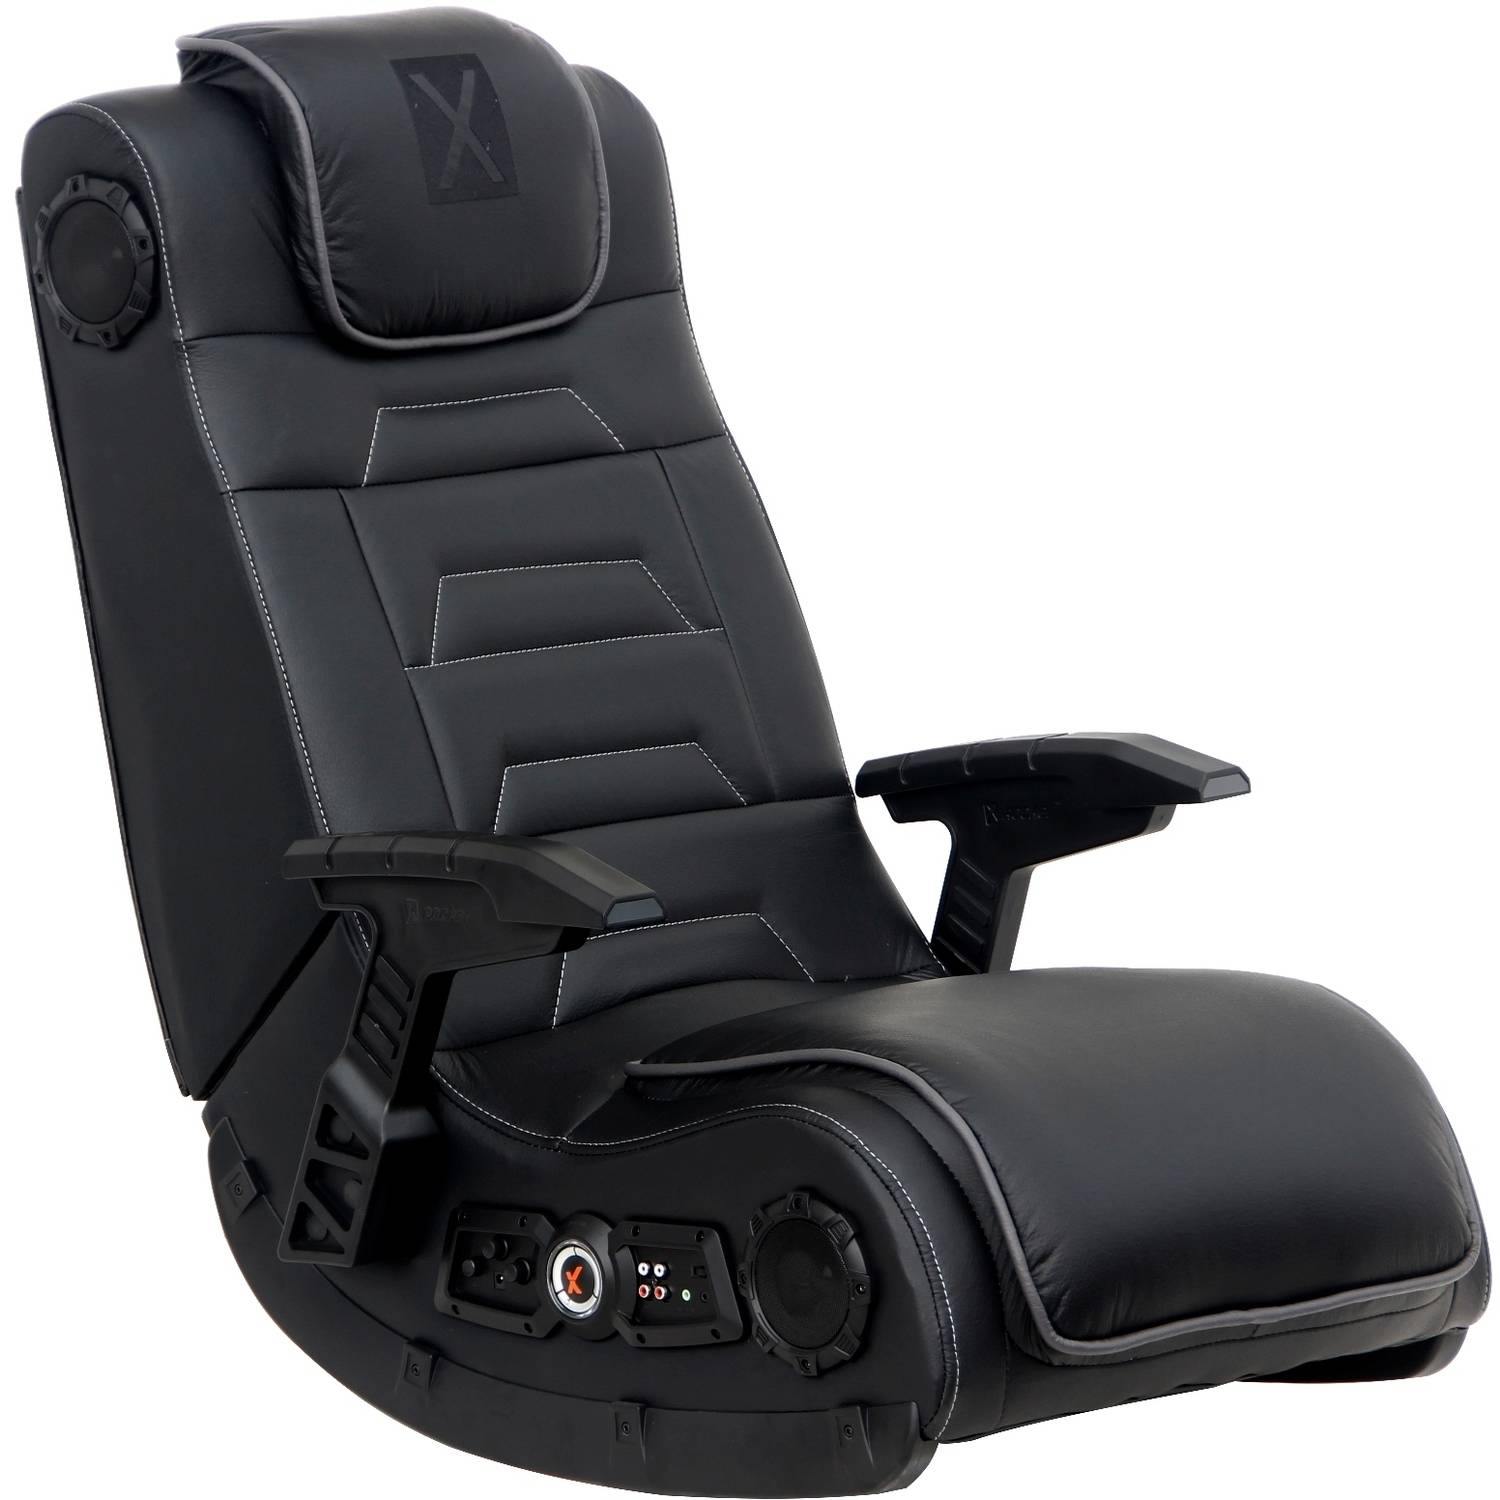 X Video Rocker Pro Series H3 4.1 Wireless Audio Gaming Chair, Black, 51259